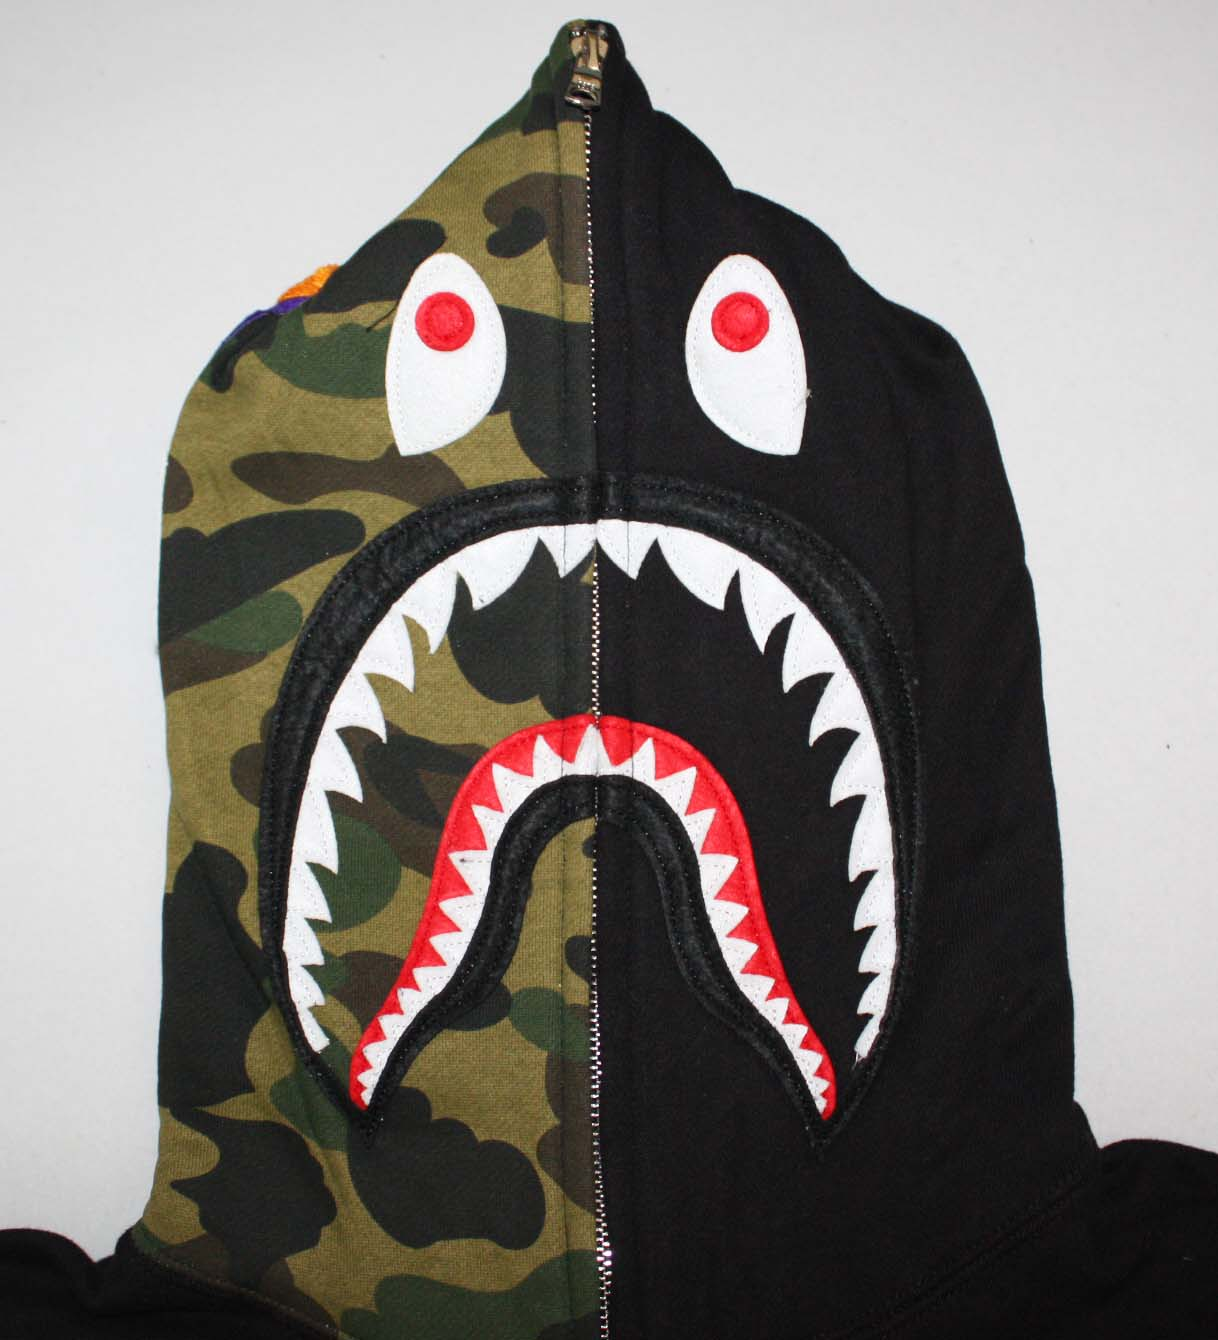 32473982888 besides Finally caught this guy in the garage after likewise Bape Golden Hoodie as well Ac1052bk together with Bape Shark Hoodie. on bape shark jacket